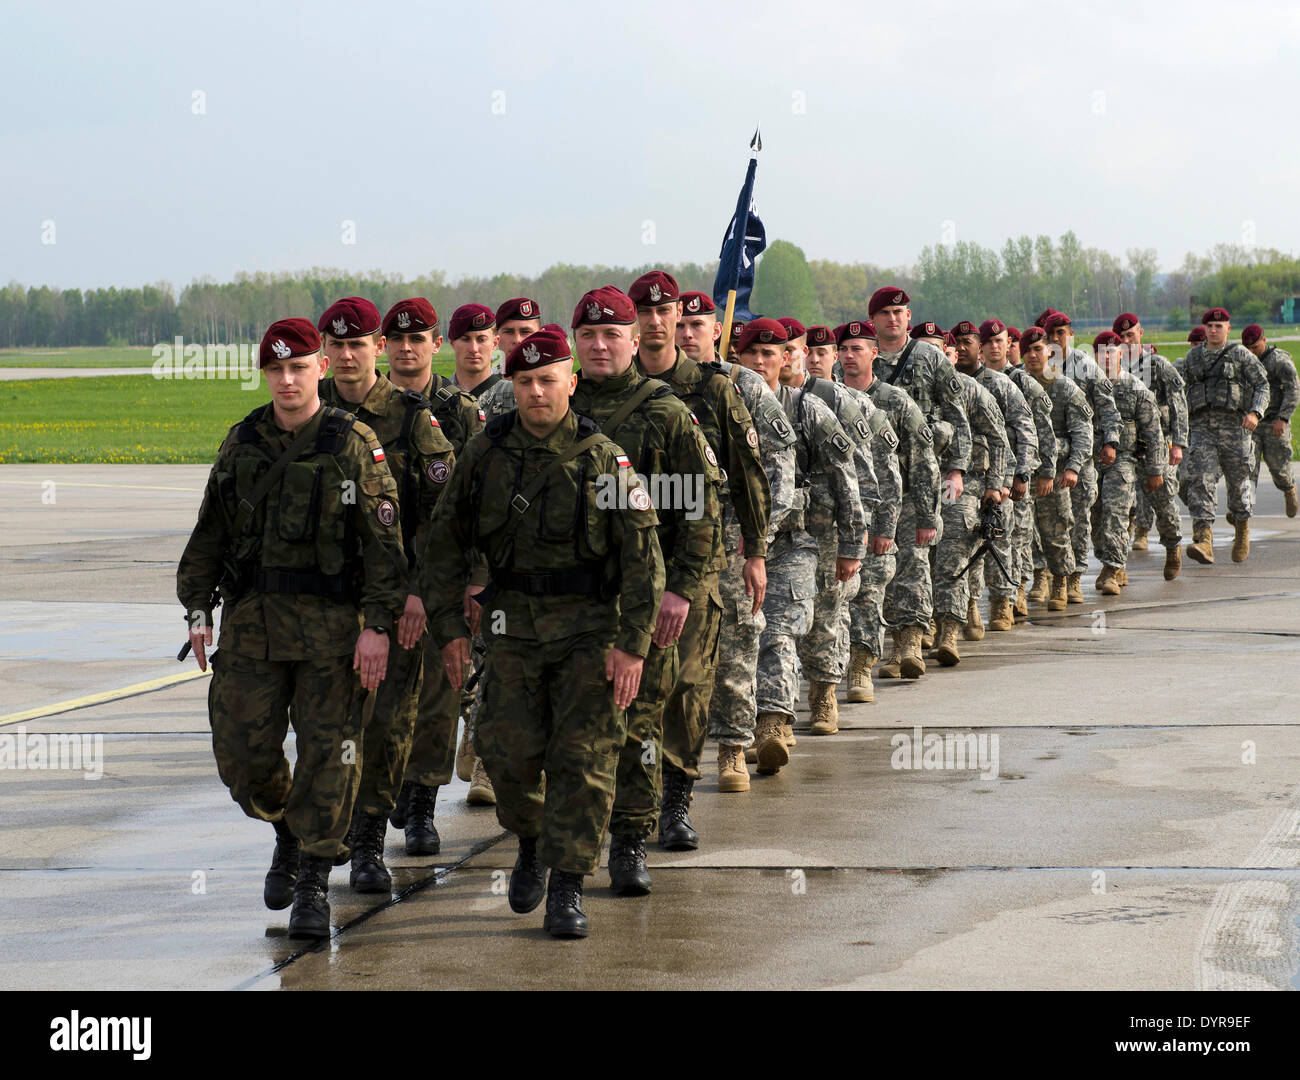 US Army paratroopers with the 173rd Airborne Brigade Combat Team arrive march alongside the Polish Army 6th Airborne Brigade on arrival April 23, 2014 in Swidwin, Poland. The soldiers were deployed to Poland and the Baltic nations as tensions with Russia rise over Ukraine. - Stock Image